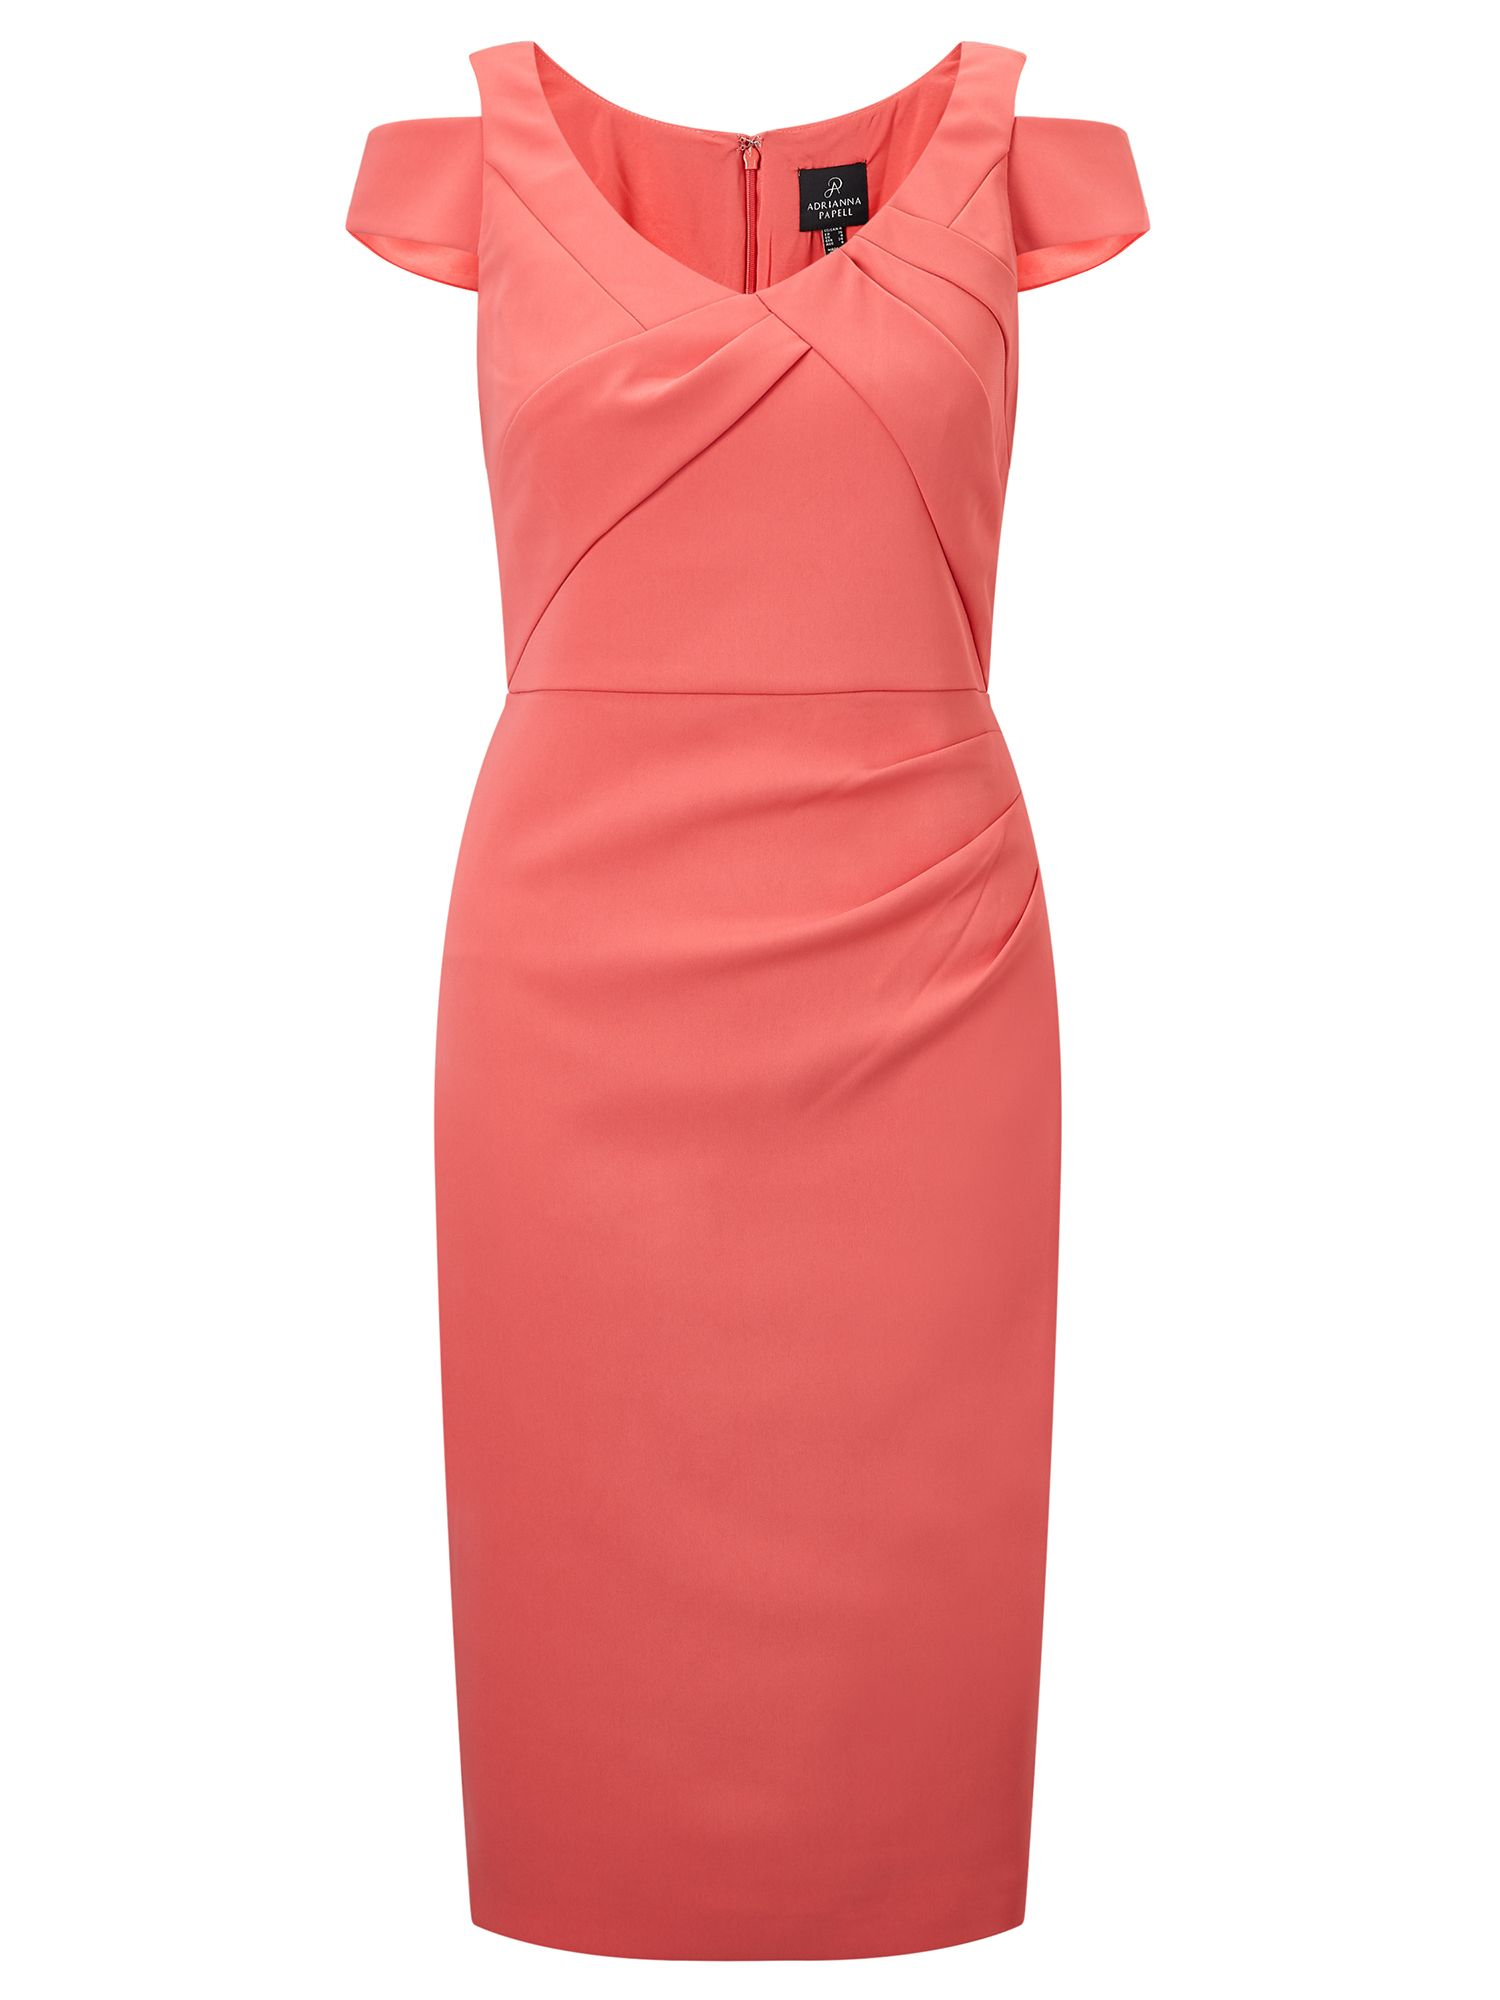 Adrianna Papell Cold shoulder sheath dress, Pink